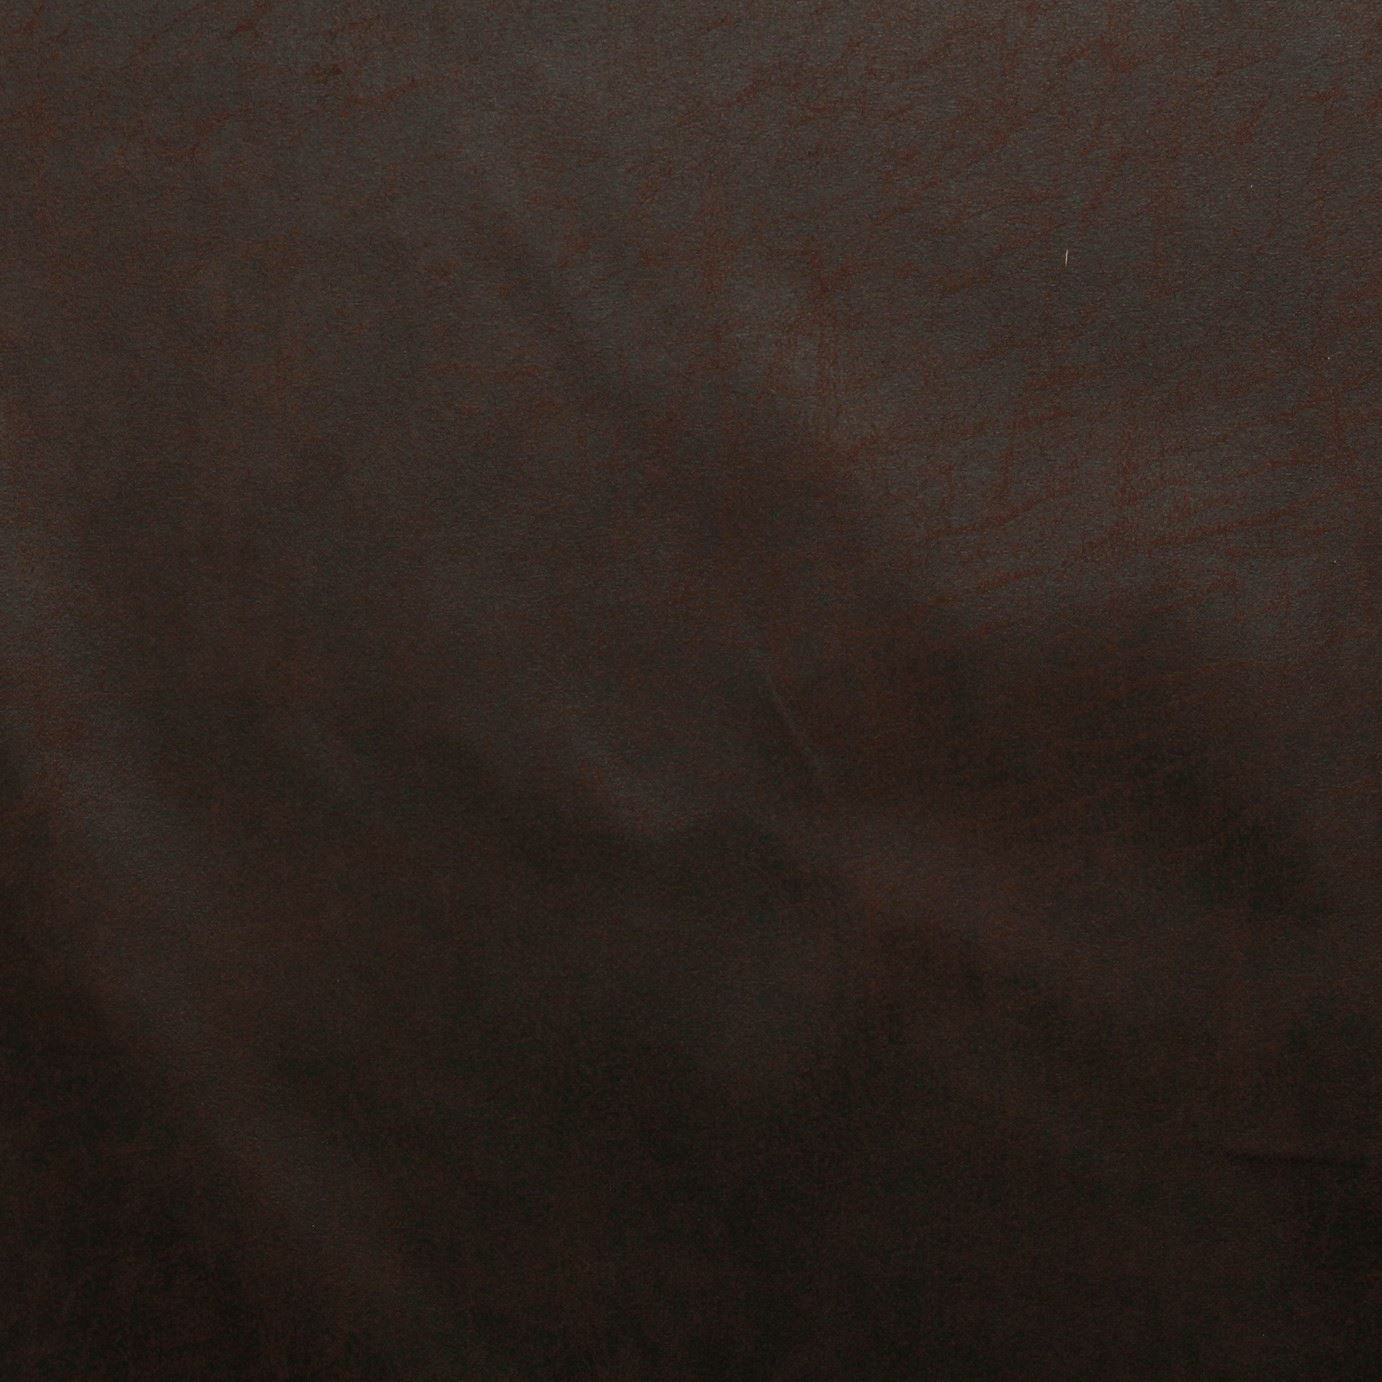 thumbnail 21 - AGED BROWN DISTRESSED ANTIQUED SUEDE FAUX LEATHER LEATHERETTE UPHOLSTERY FABRIC